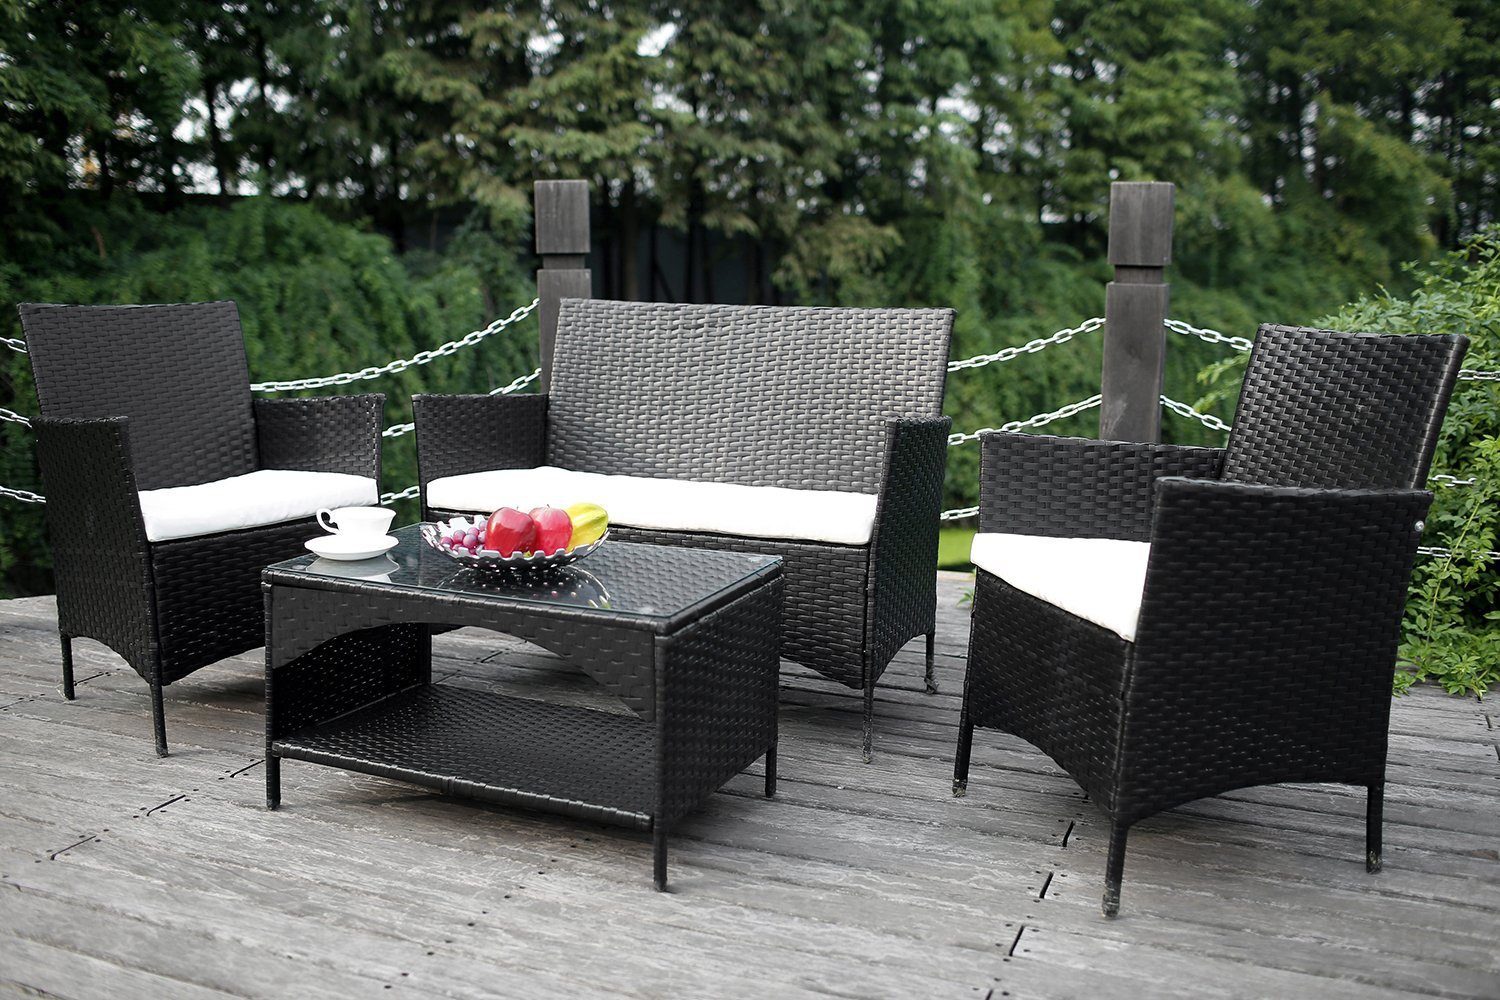 patio set irenerecoverymap outdoor wicker white random glamorous cheap paint sets furniture